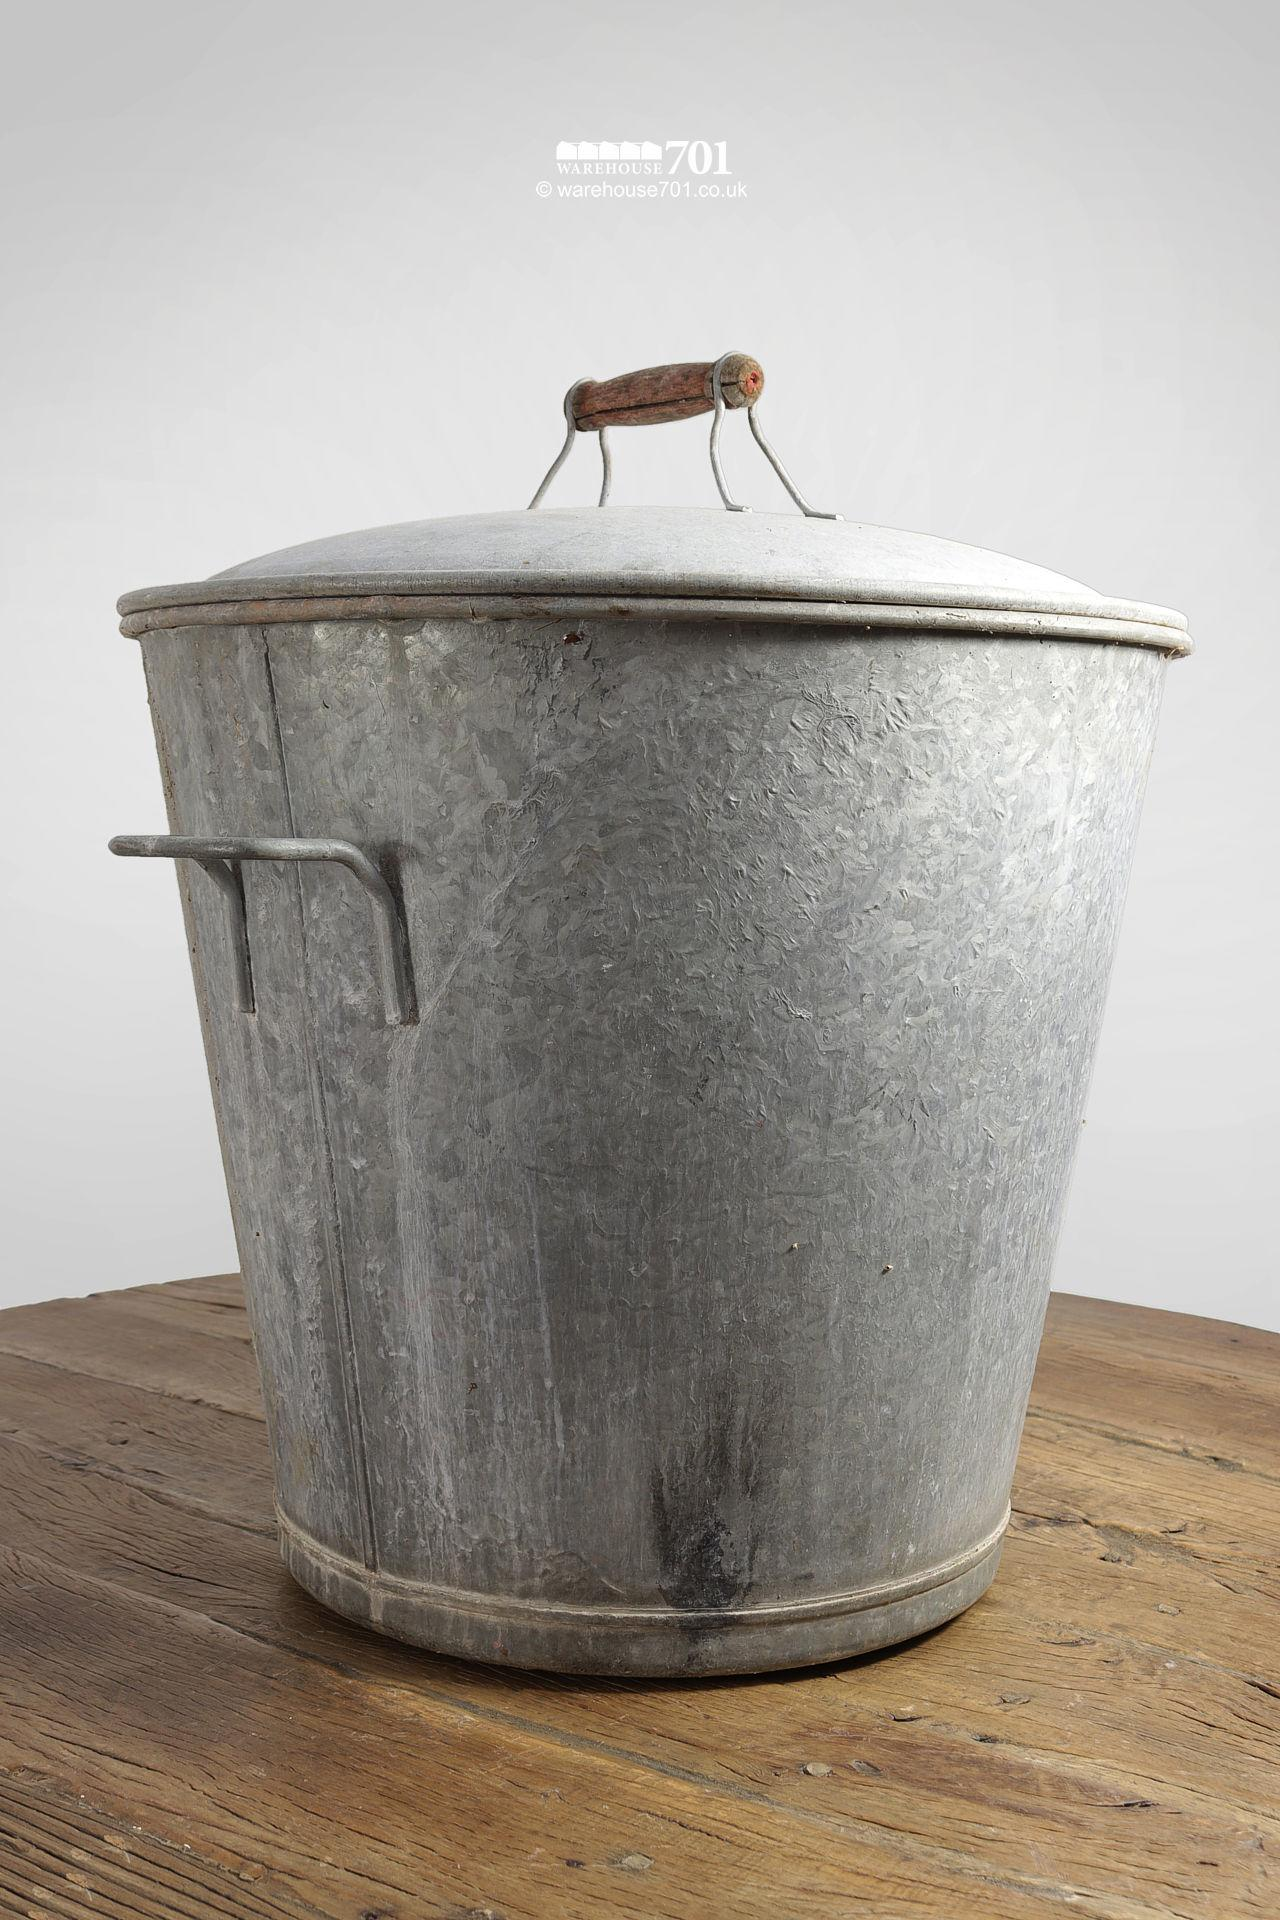 Handsome Vintage Galvanised Bucket with Lid #2